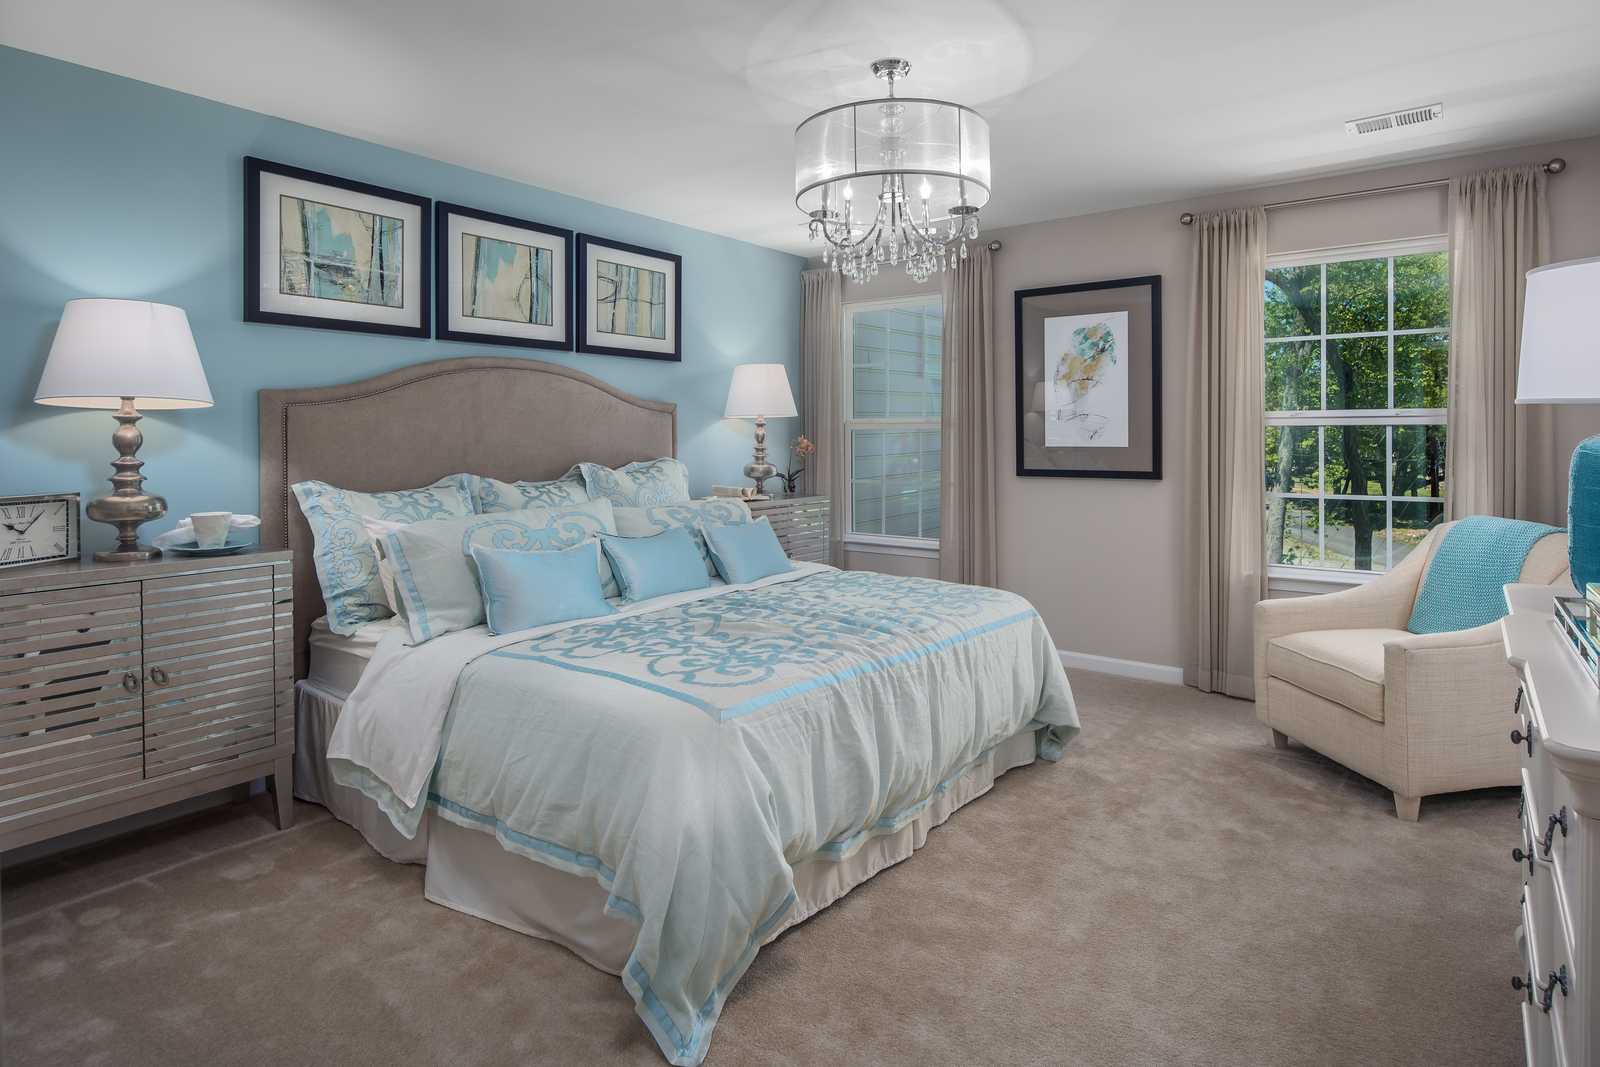 New Homes for sale at The Towns At Bryan\'s Cove in Chesapeake, VA ...